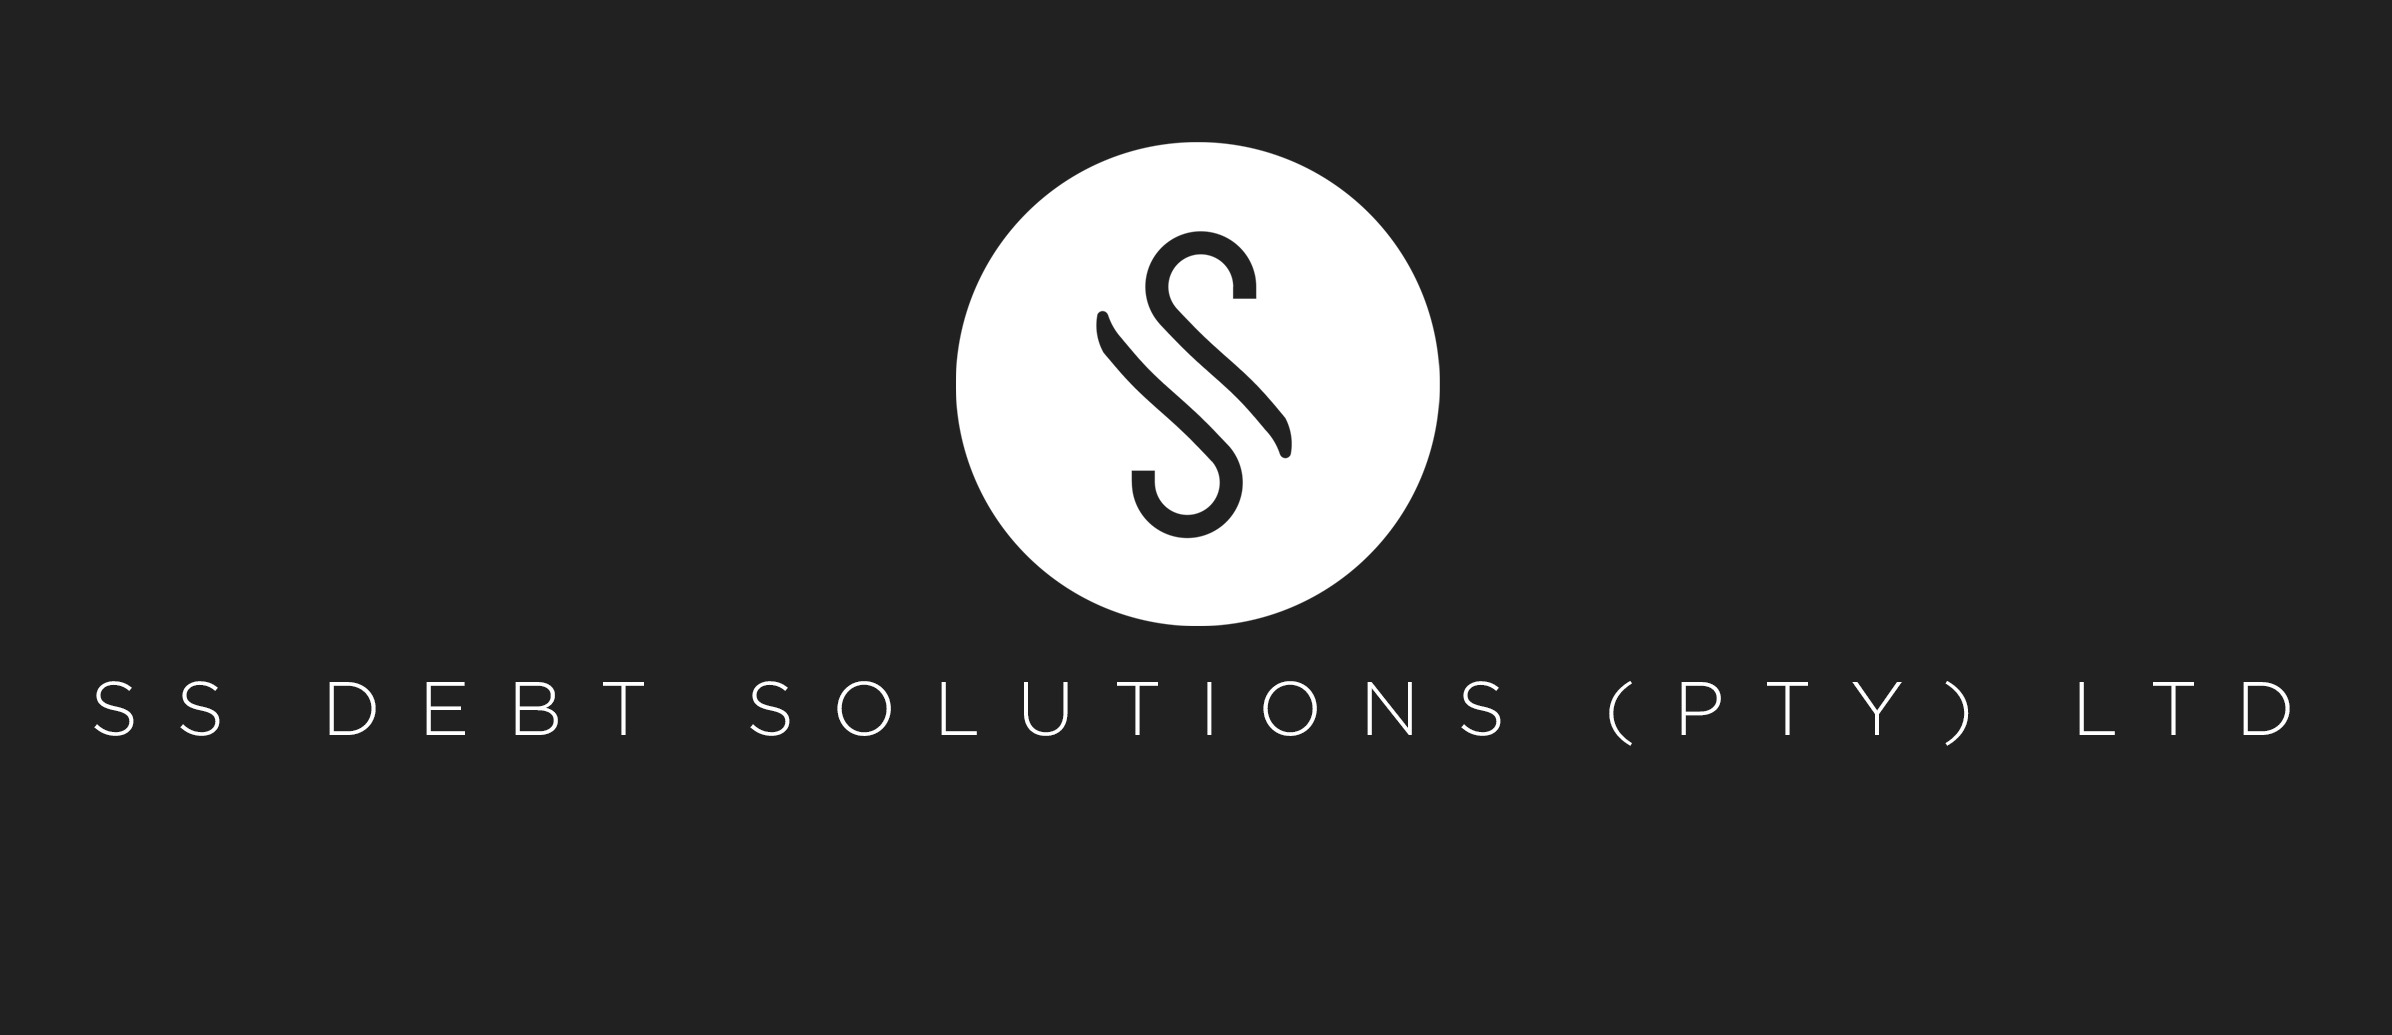 SS Debt Solutions (Pty)Ltd